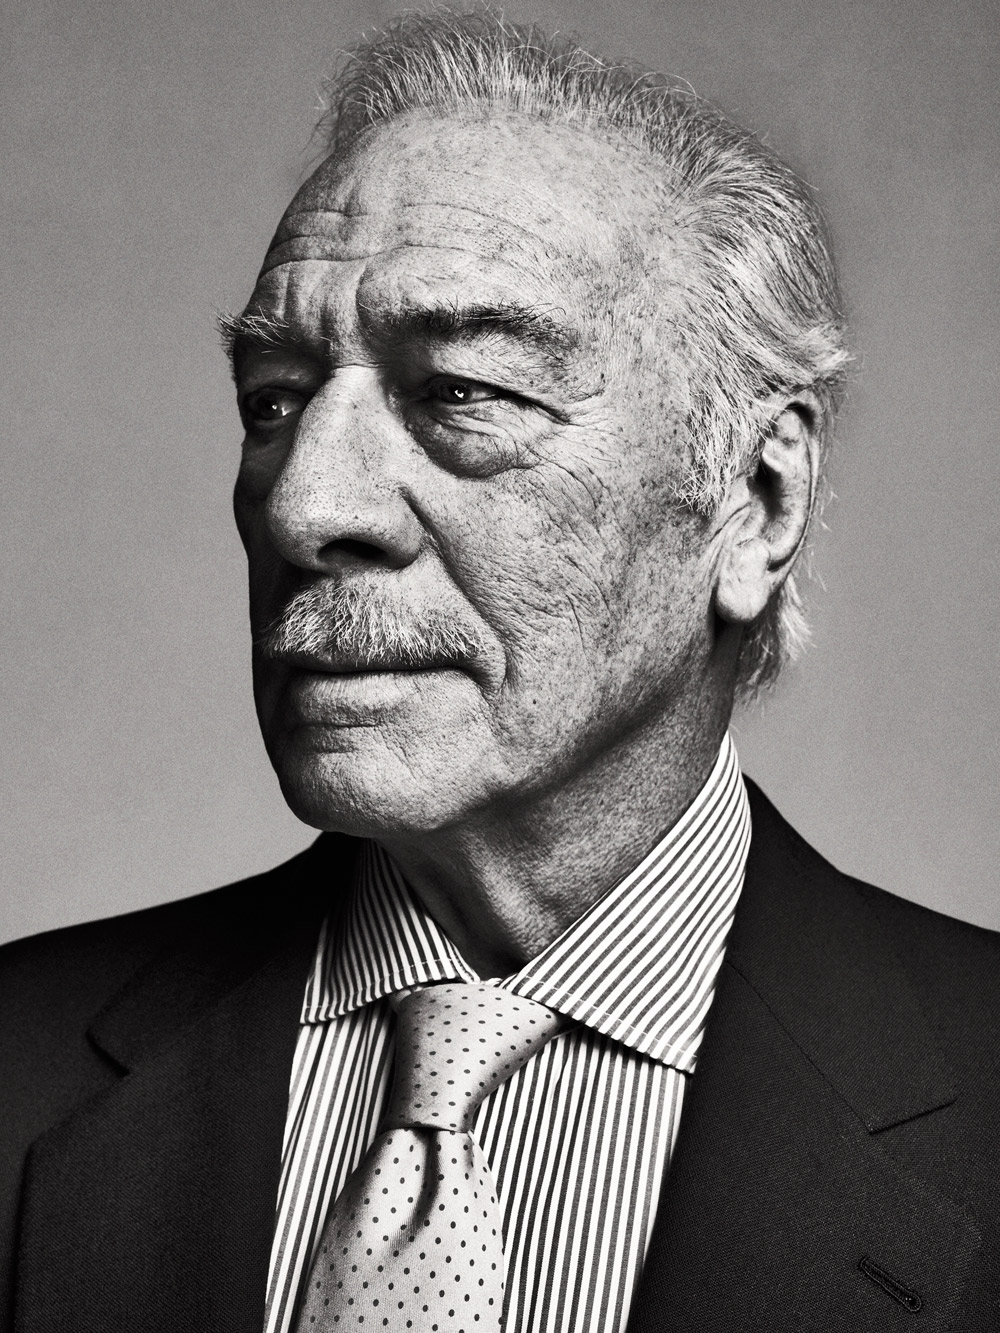 Christopher Plummer2011 Performances: Beginners, Barrymore, PriestNominated: Best Supporting Actor for Beginners